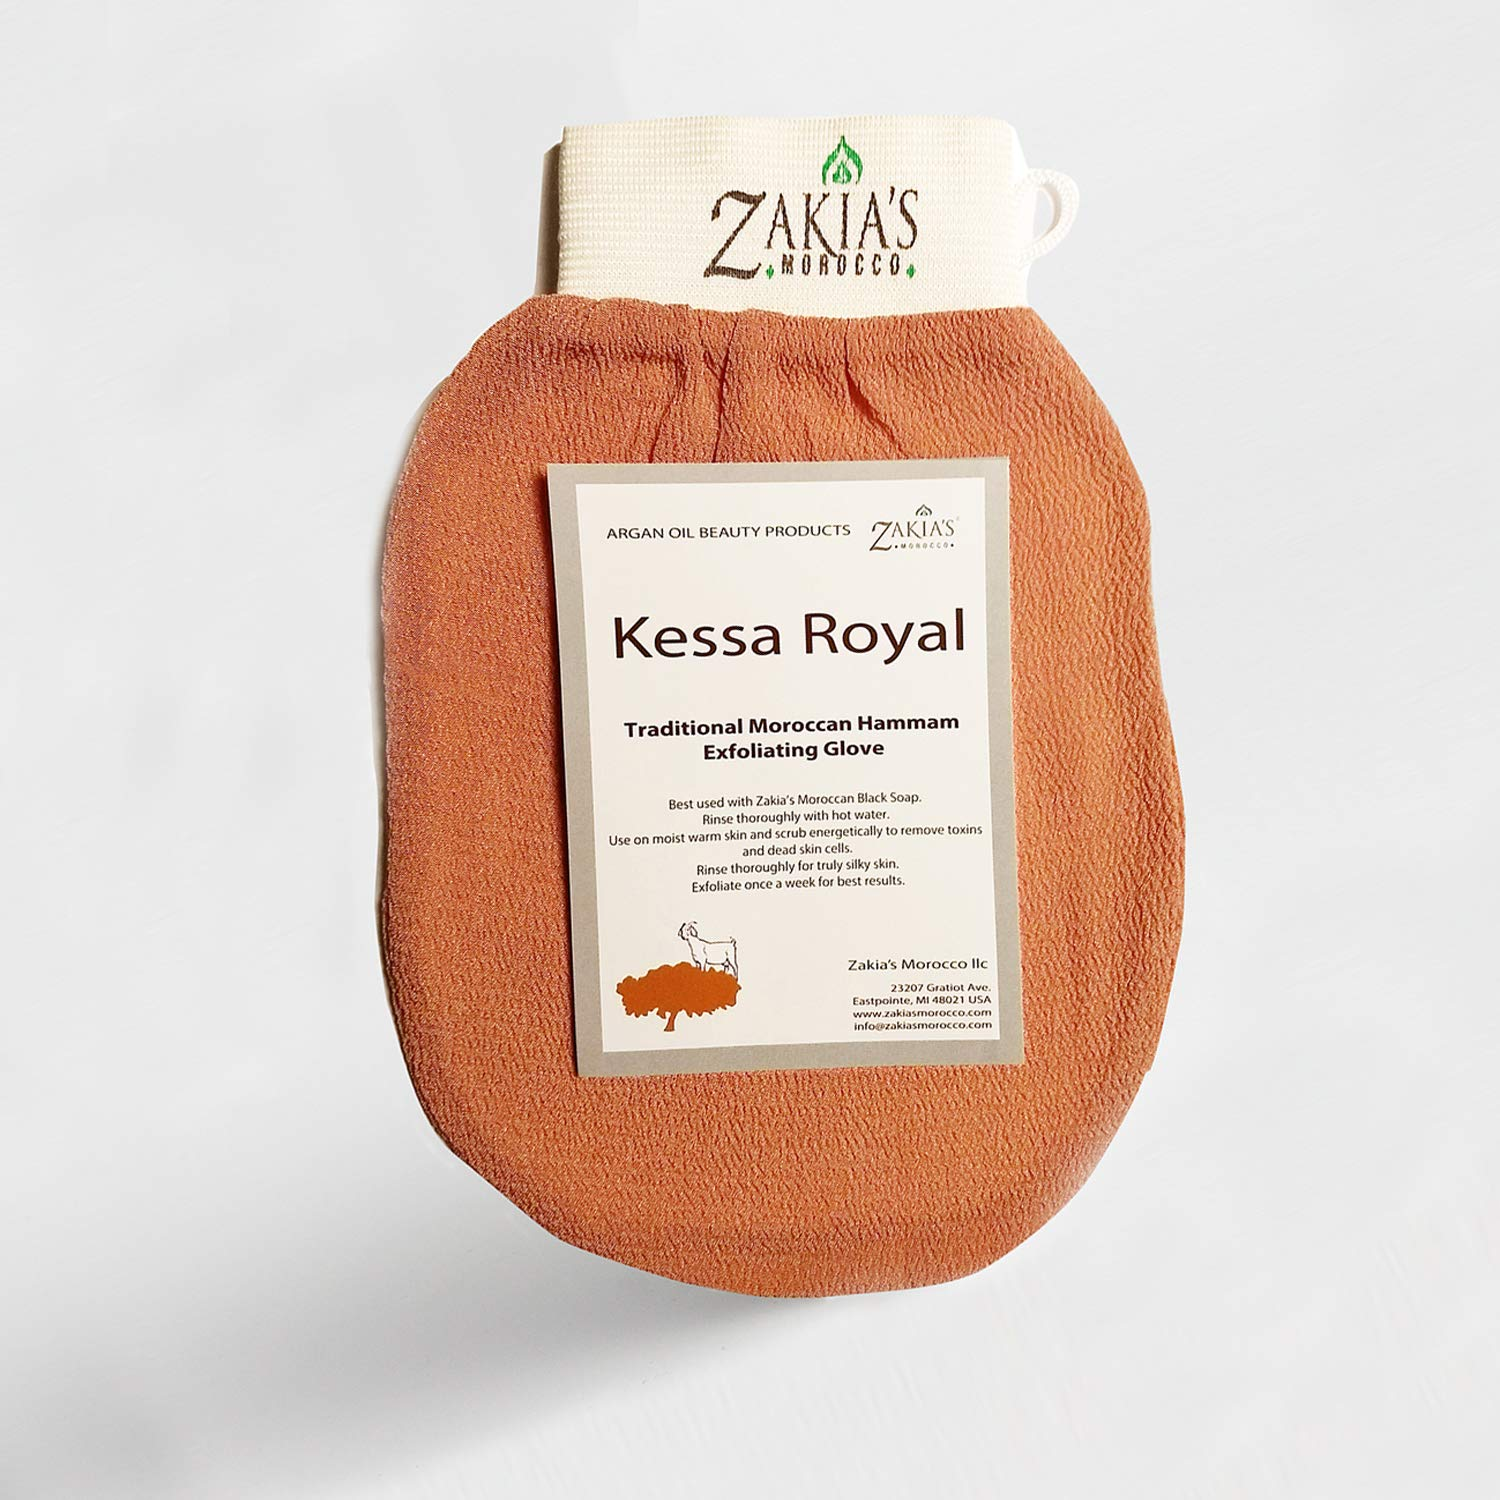 Zakia's Morocco The Original Kessa Hammam Exfoliating Gloves